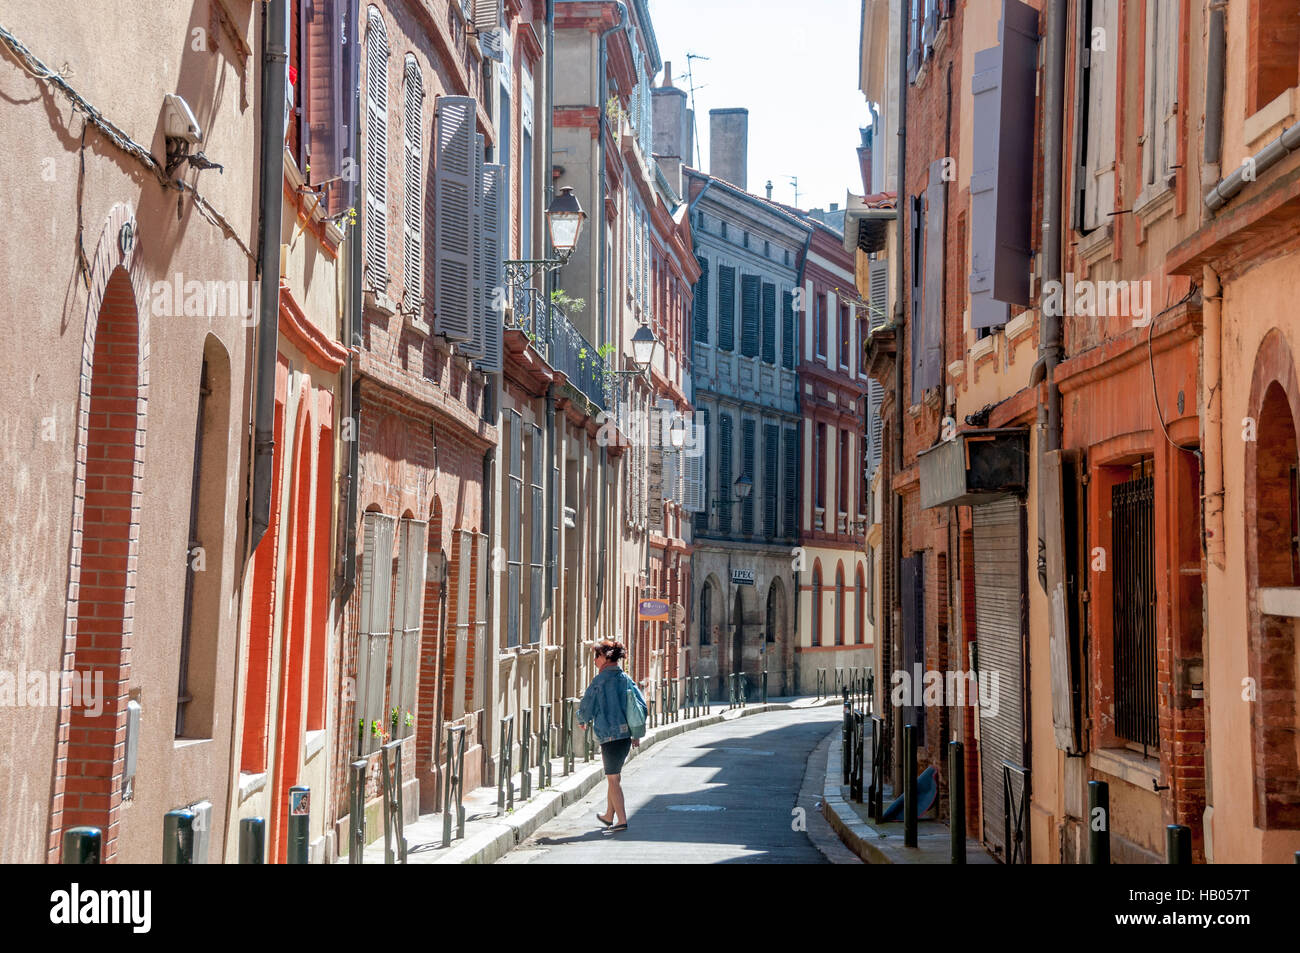 Toulouse city centre haute garonne france europe stock - Centre bouddhiste haute garonne ...